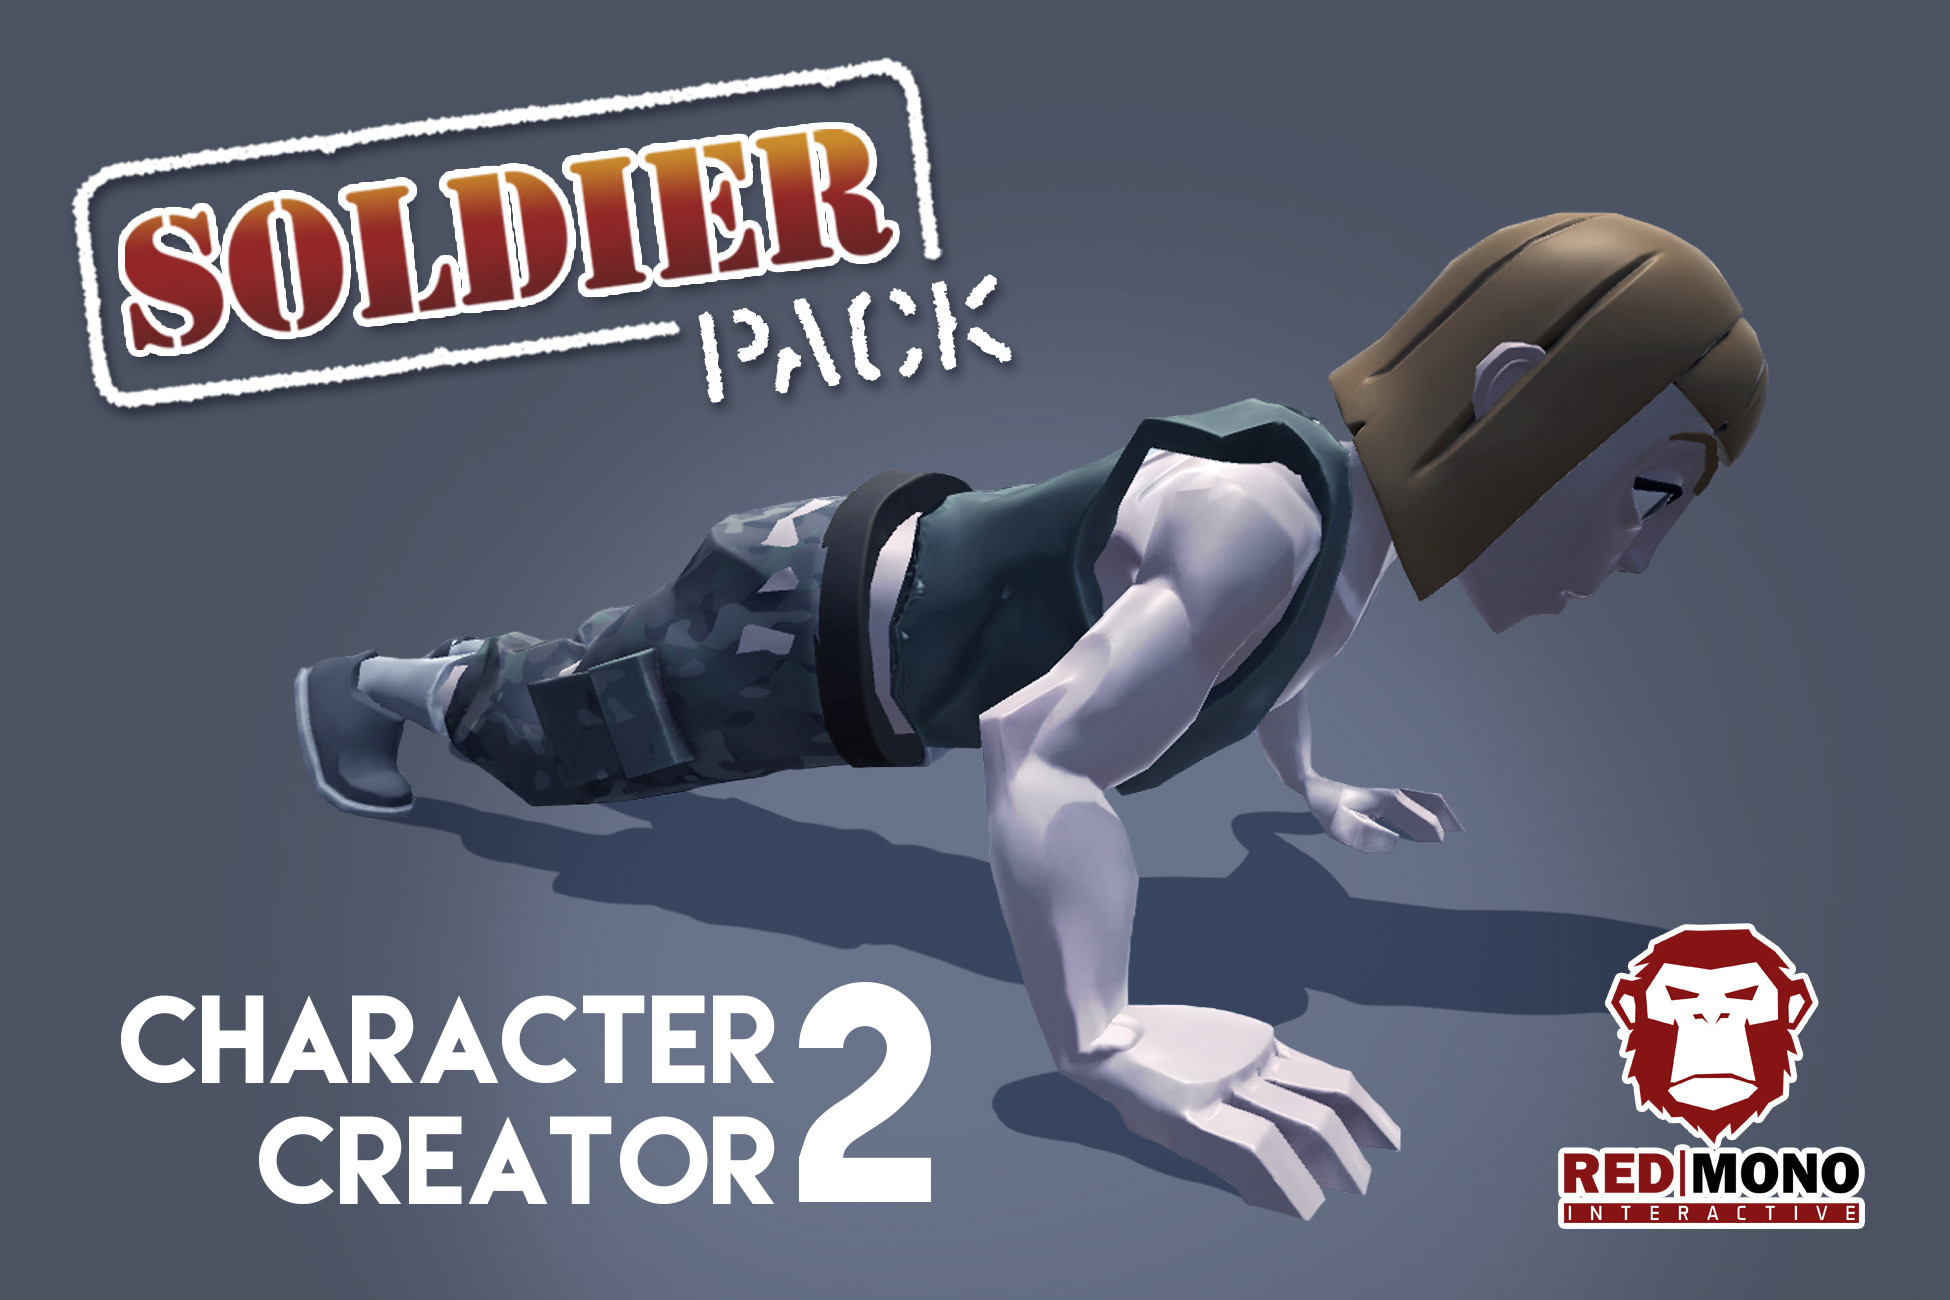 Character Creator 2 - Soldier Pack